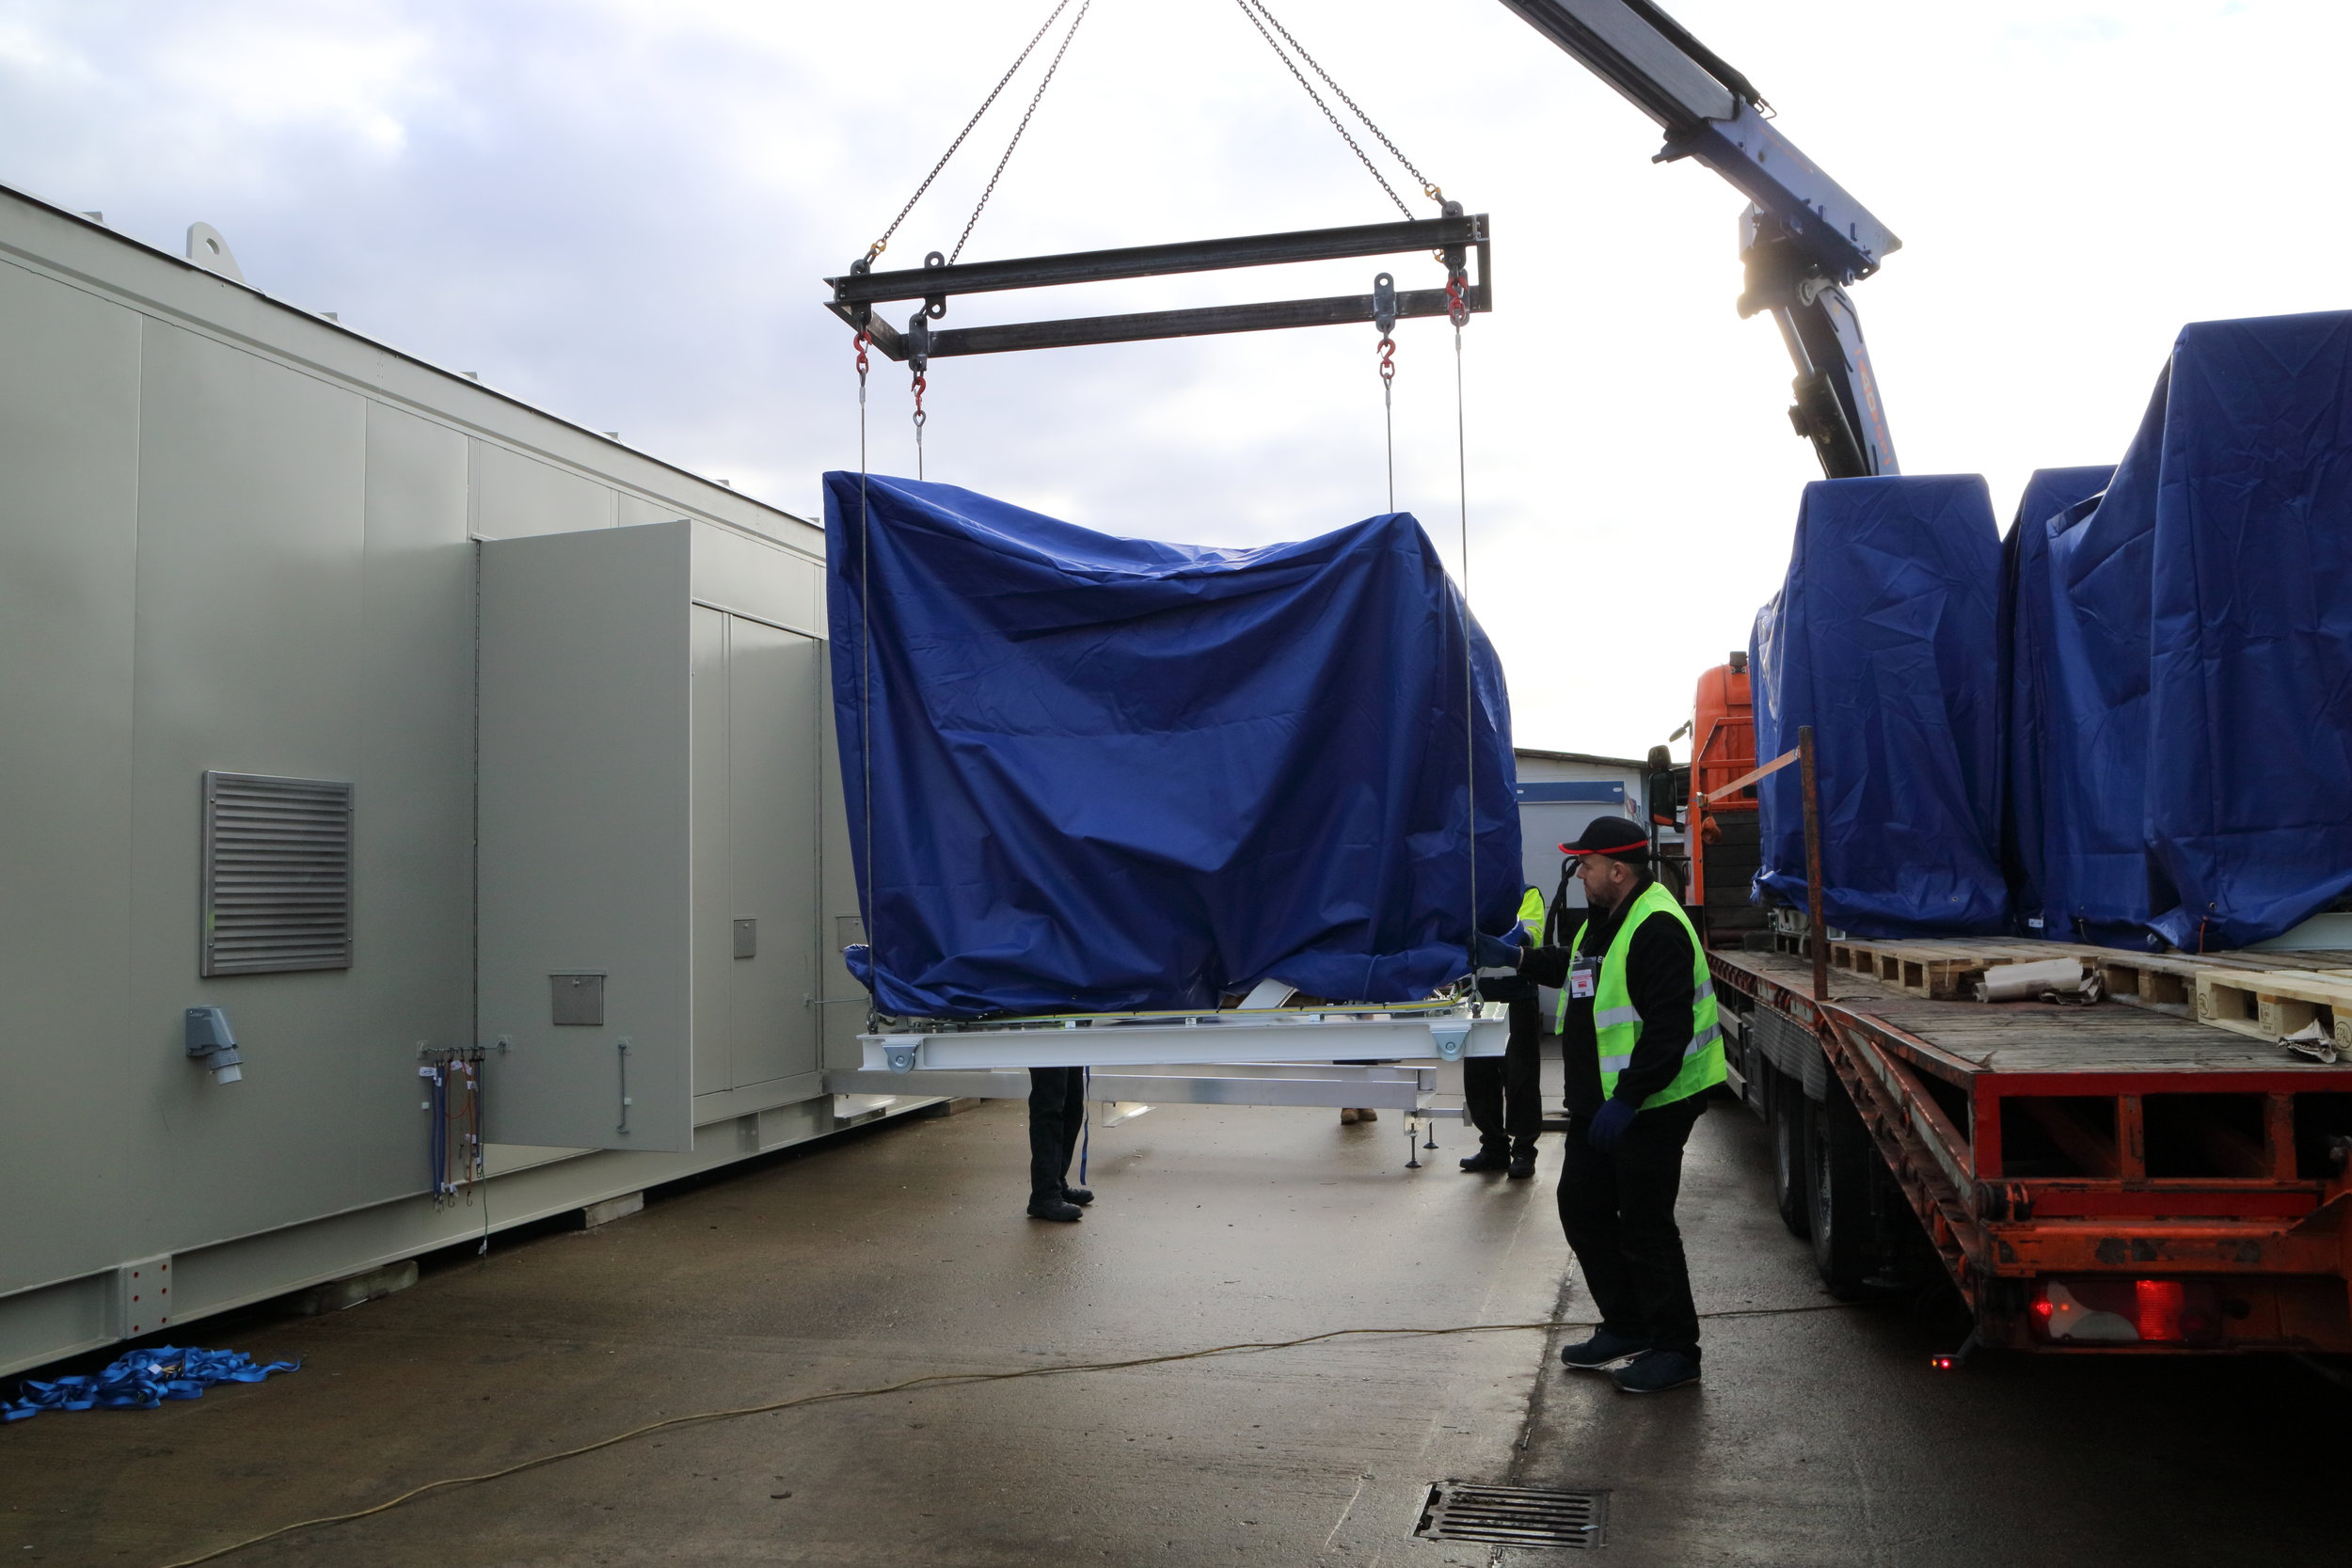 Image 2 - pallet being lifted in to sub.JPG